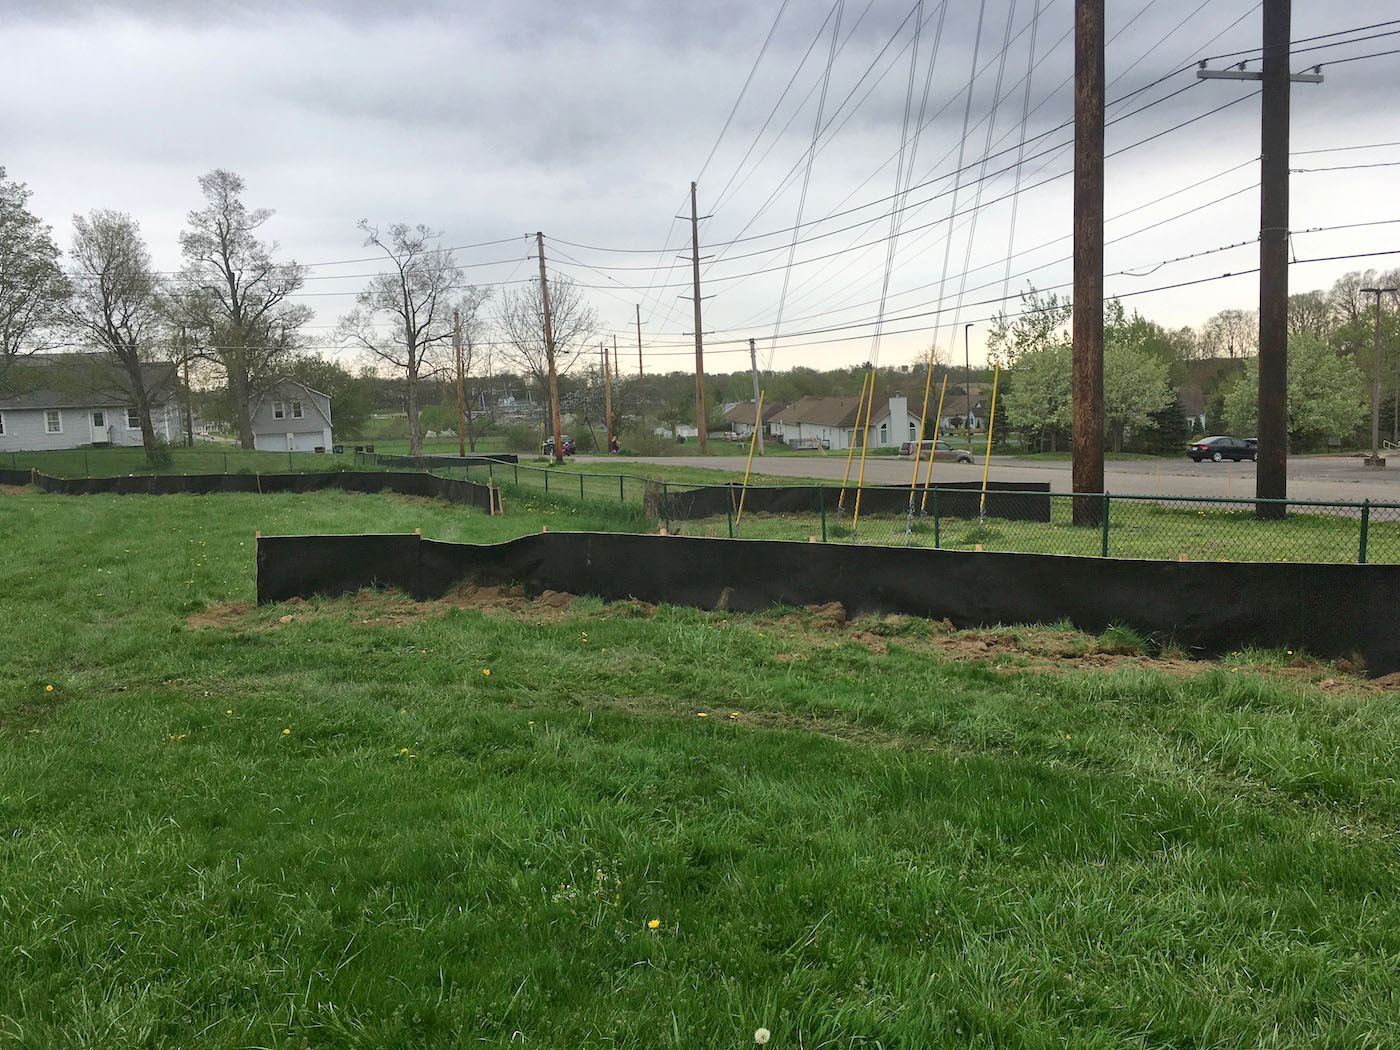 Siltron silt fence being used on roadside